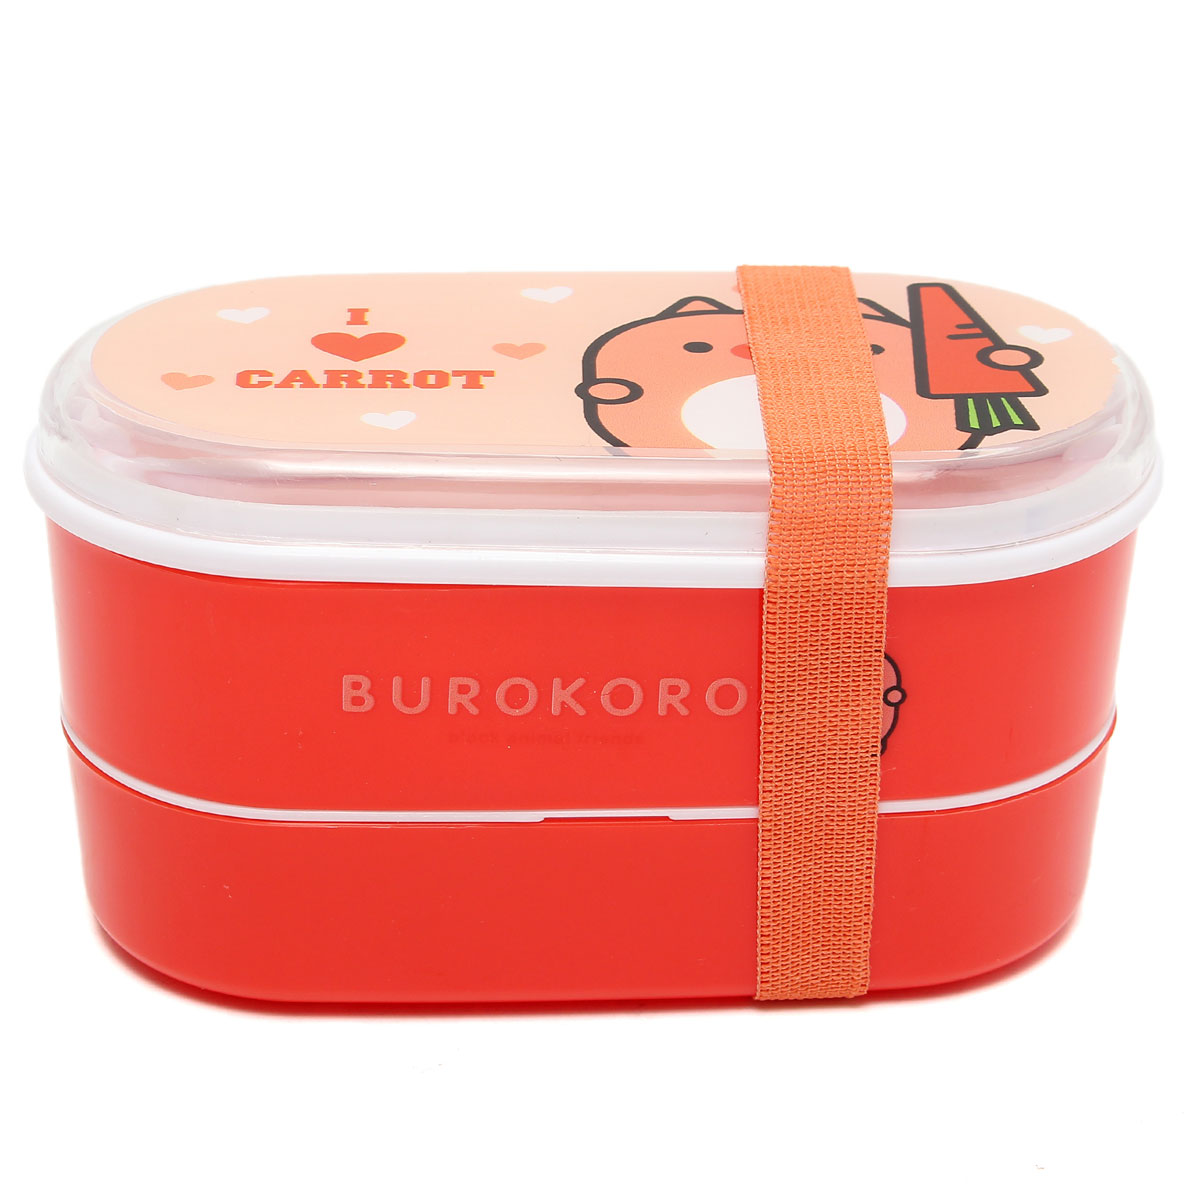 student cartoon lunch box food container storage portable bento box chopsticks red lazada malaysia. Black Bedroom Furniture Sets. Home Design Ideas